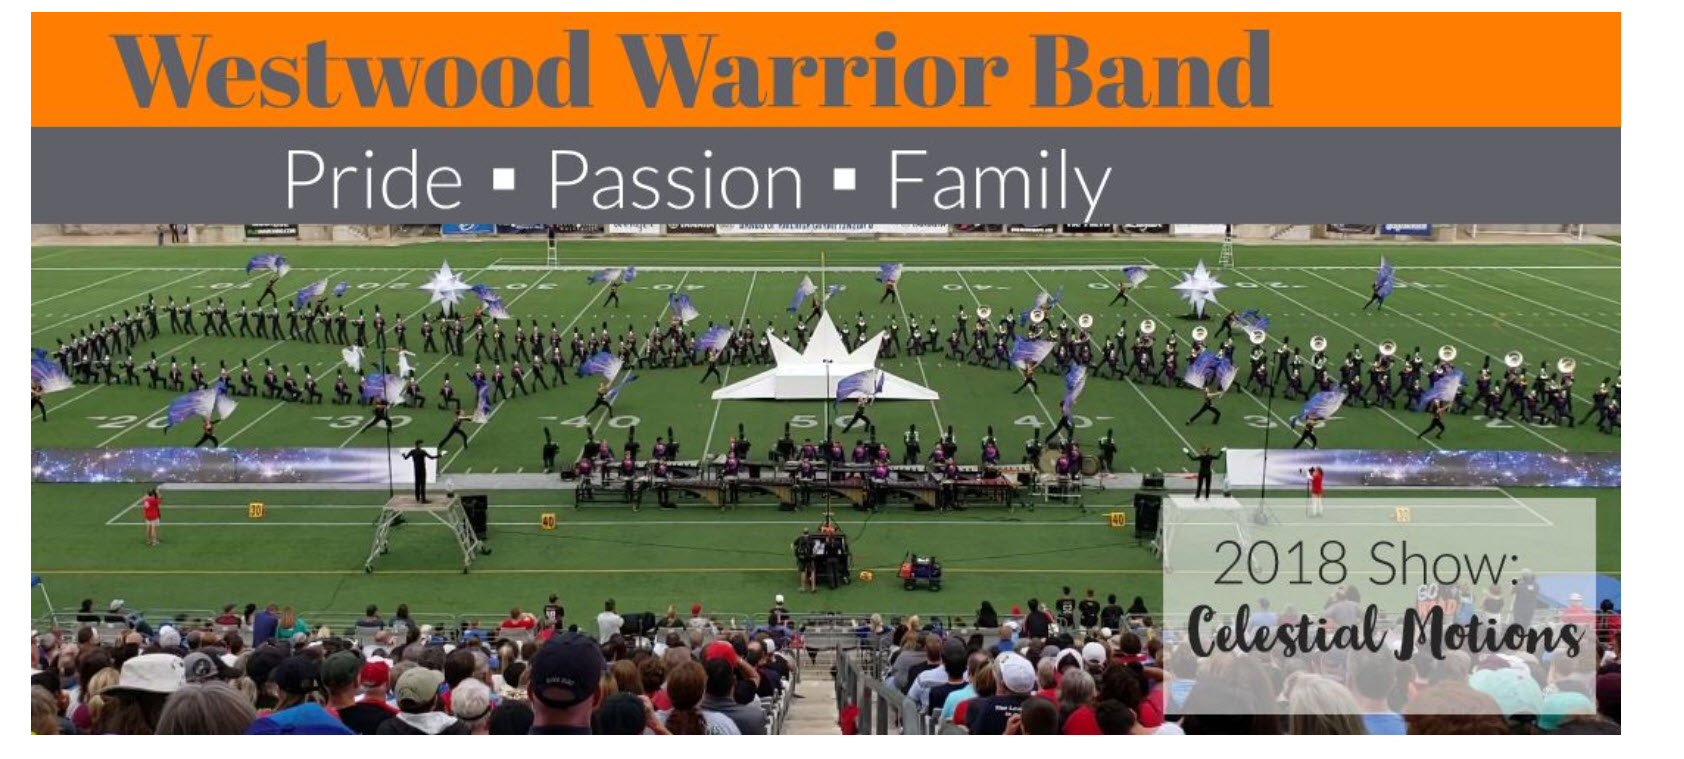 Westwood Warrior Band